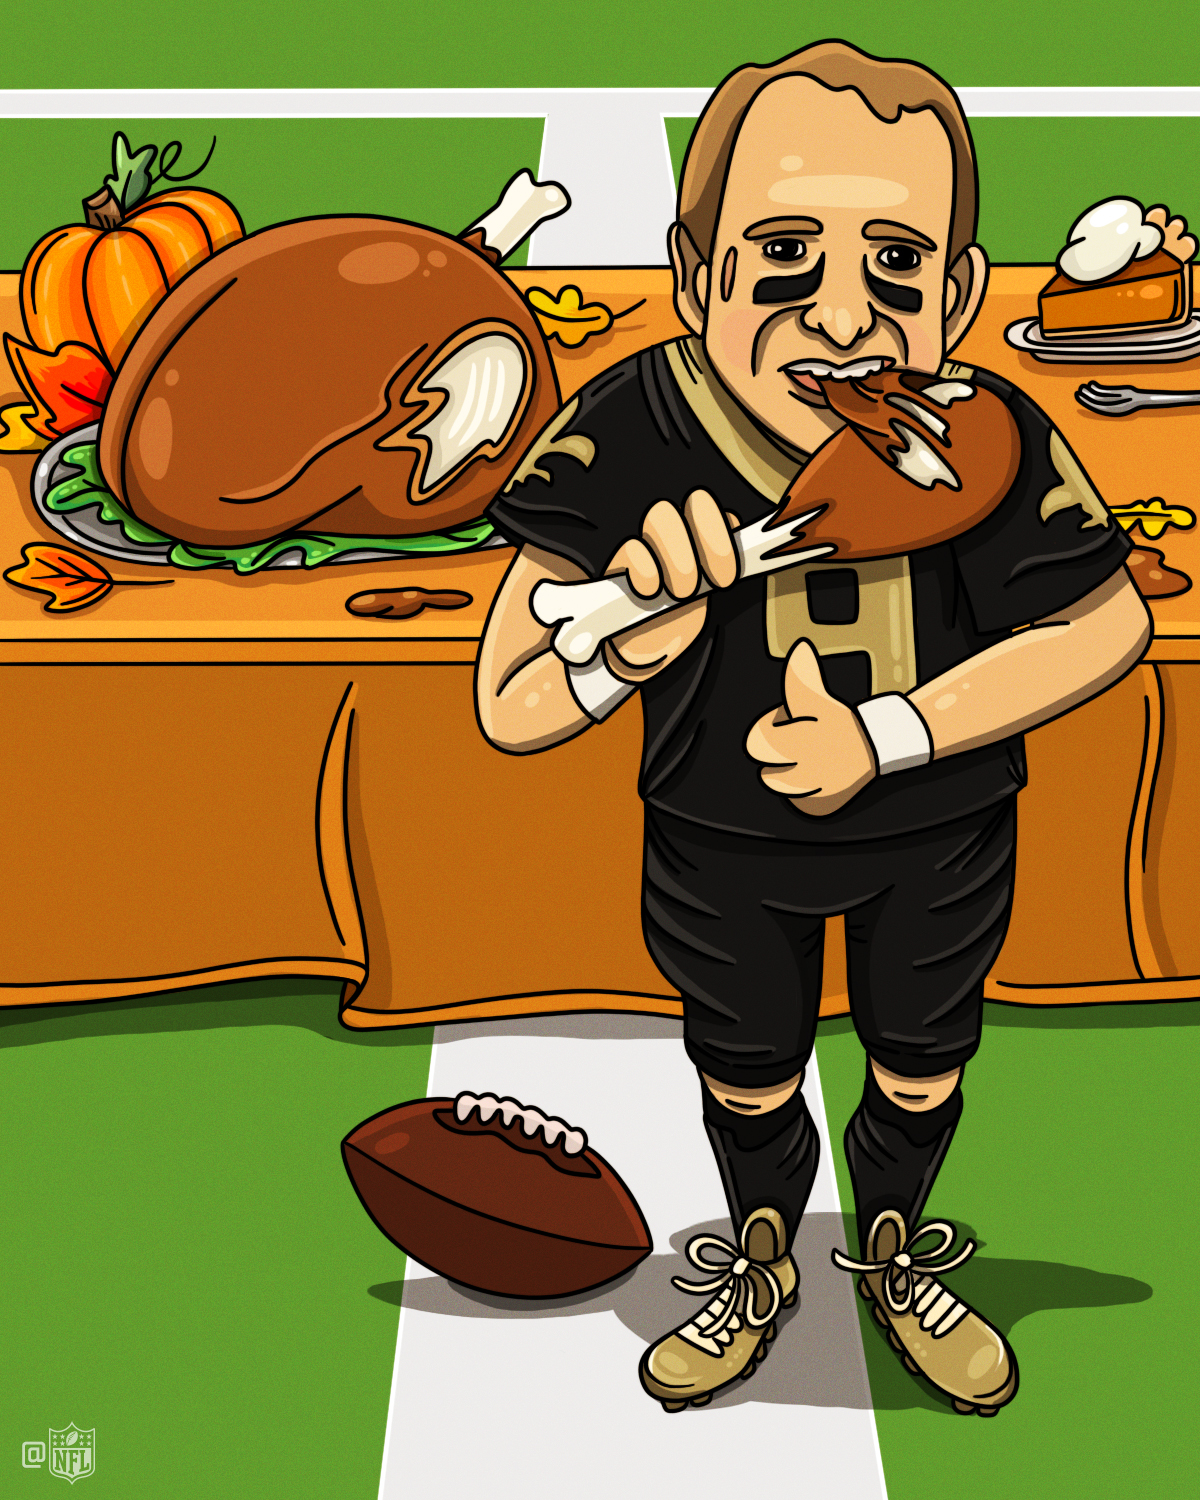 181119_Drew-Brees-Turkey-Leg_v02_RW.jpg